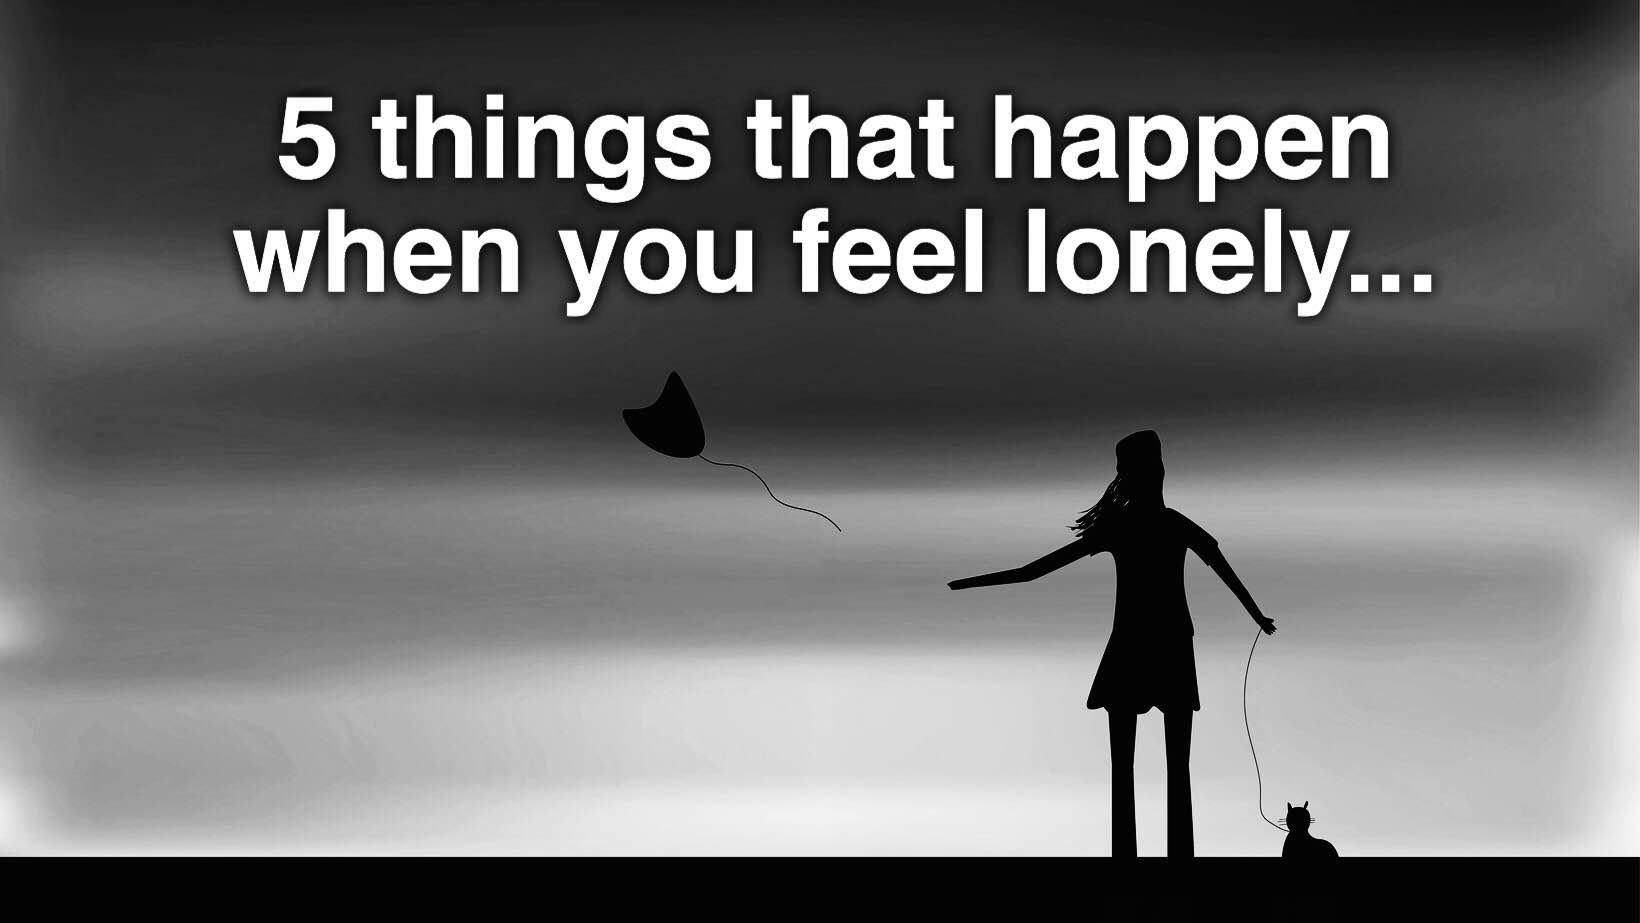 5 Things That Happen When You Feel Lonely